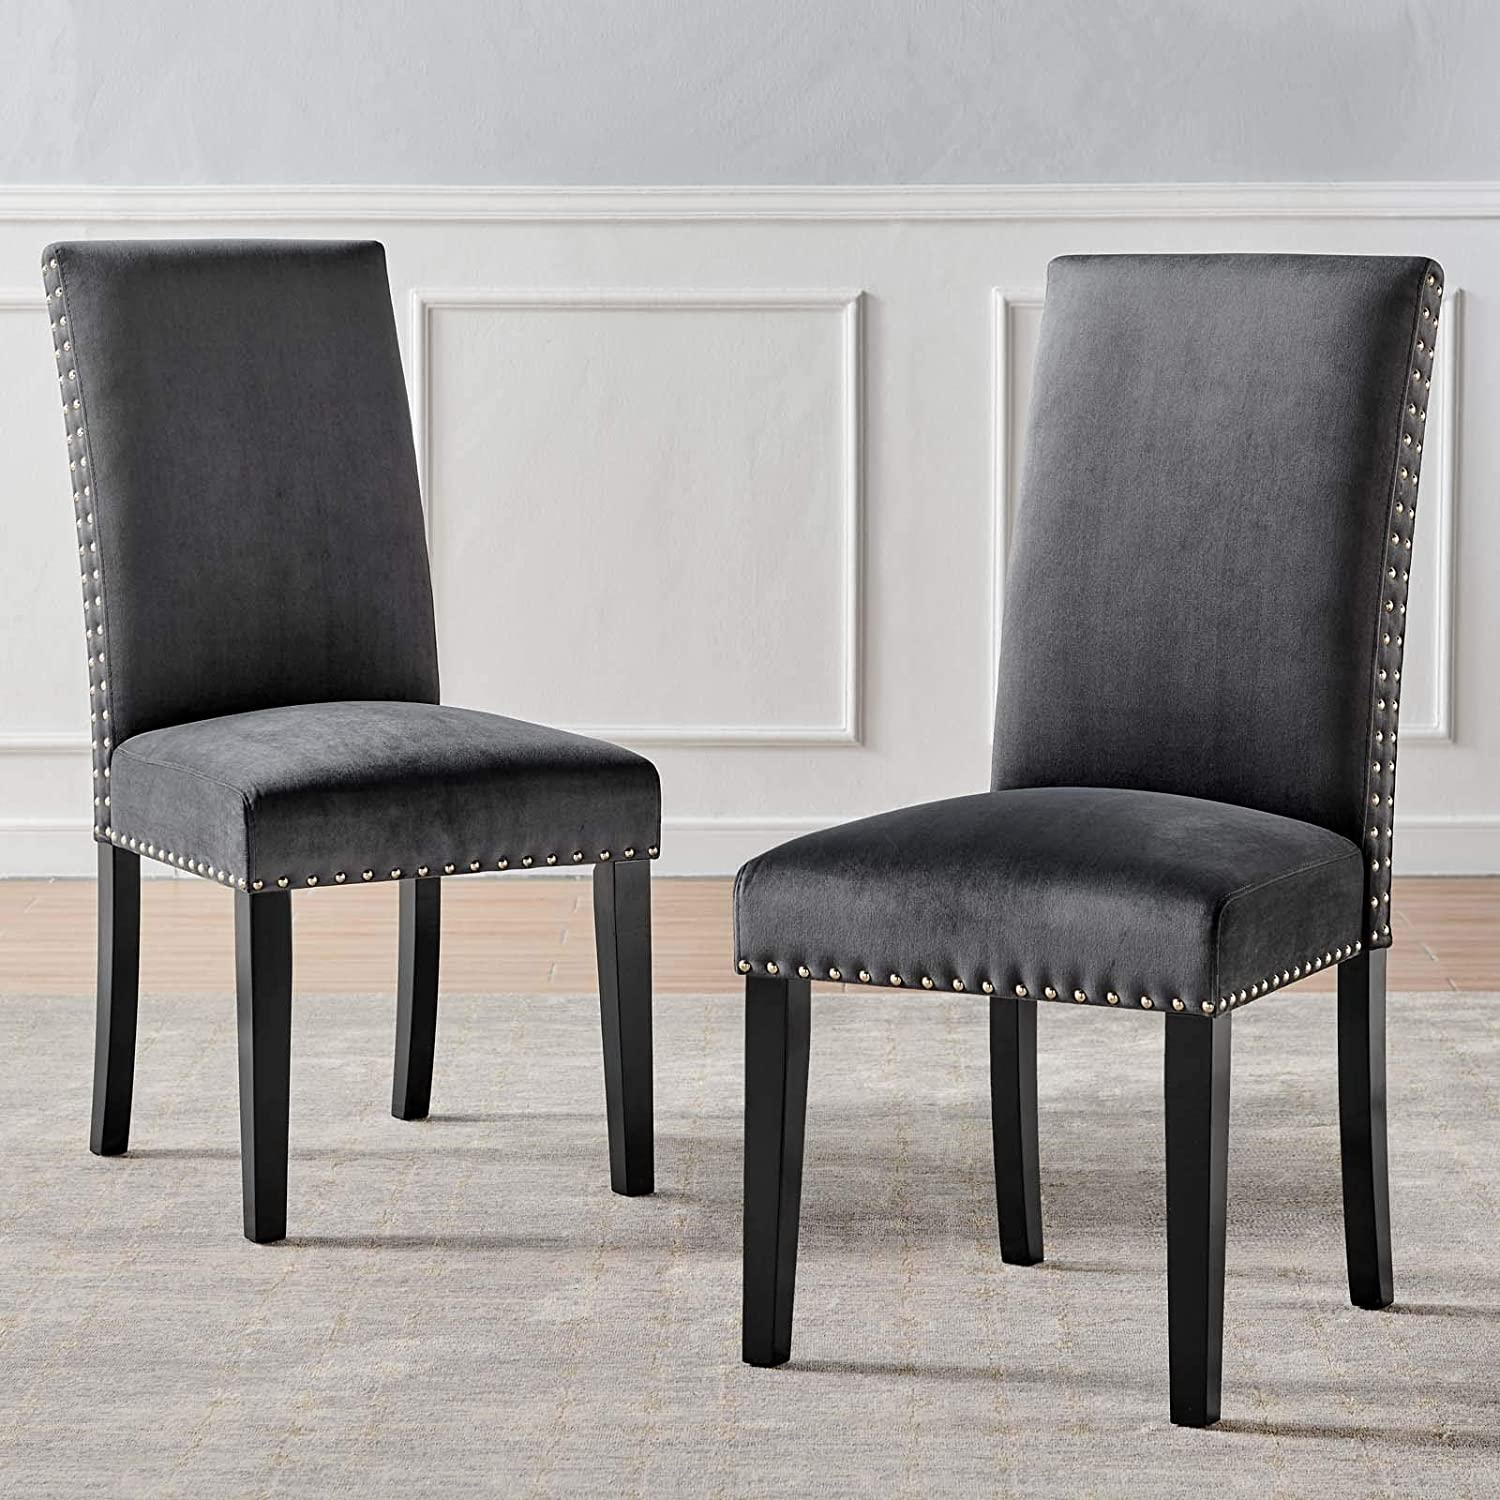 Modway EEI-3779-CHA Parcel Performance Velvet Dining Side Chairs - Set of 2, Charcoal